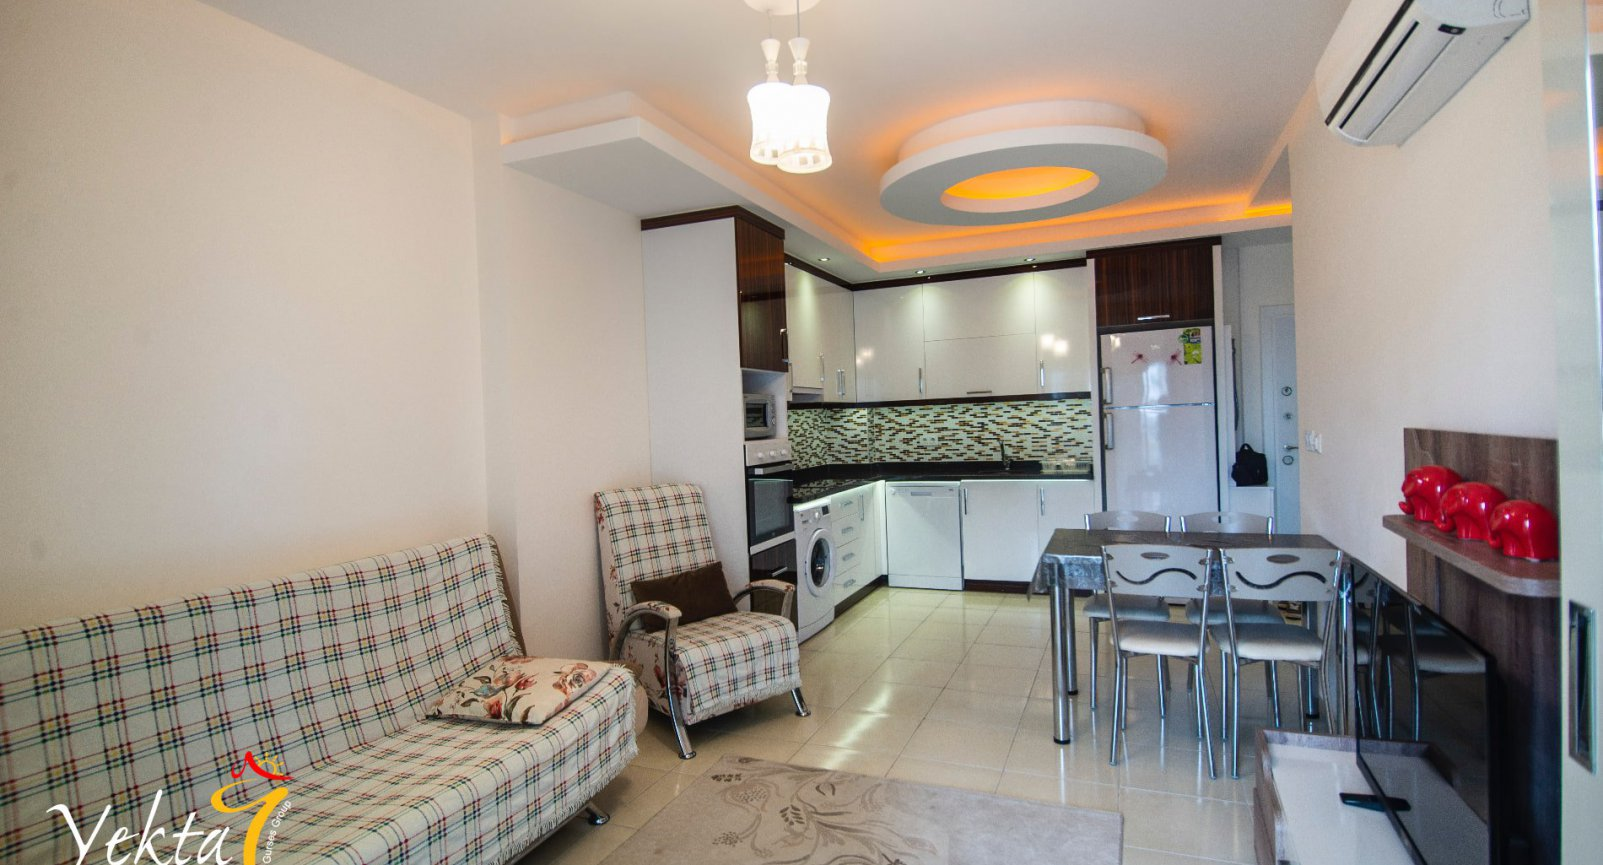 Wonderful apartment 1+1 in a nice calm area of Mahmutlar